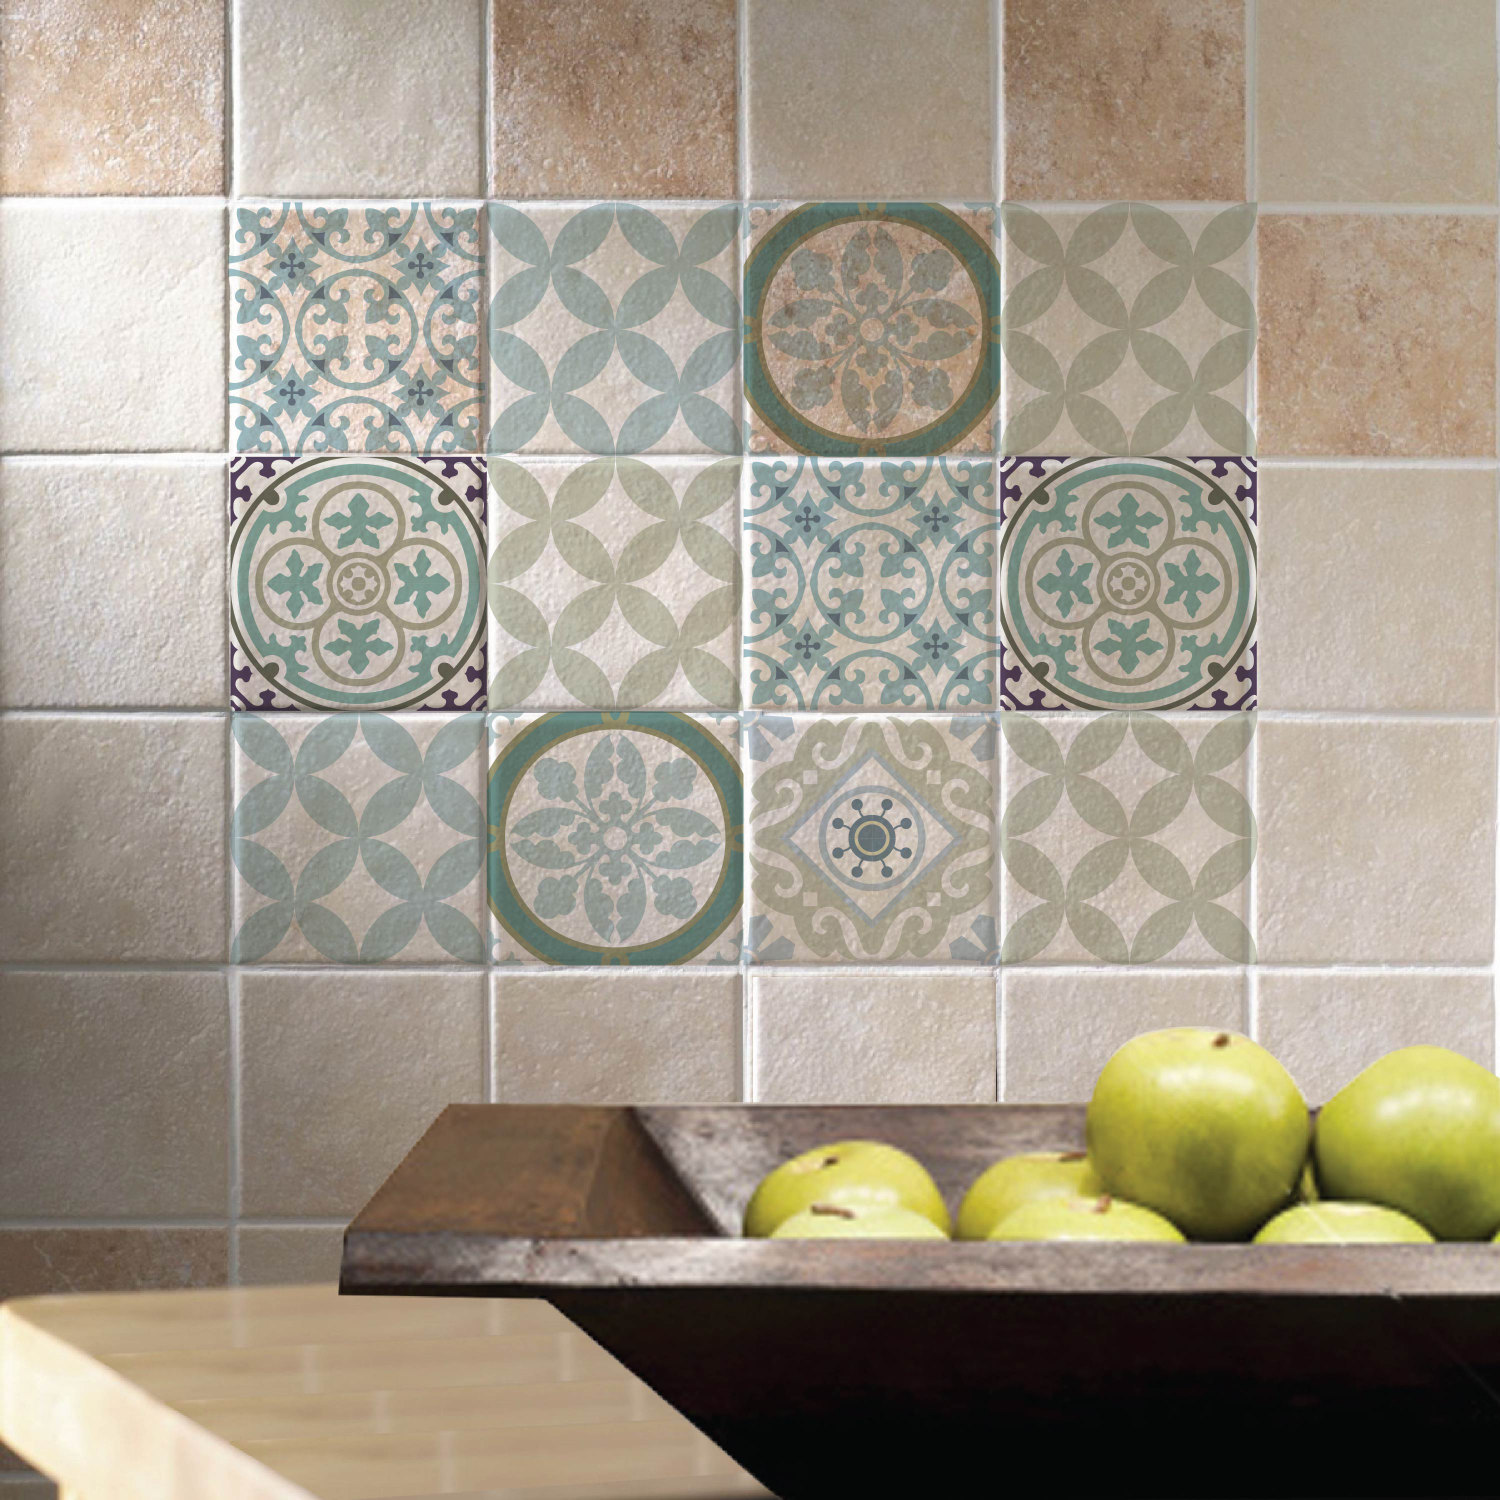 Mix tile decals kitchenbathroom tiles vinyl floor tiles free mix tile decals kitchenbathroom tiles vinyl floor tiles dailygadgetfo Gallery